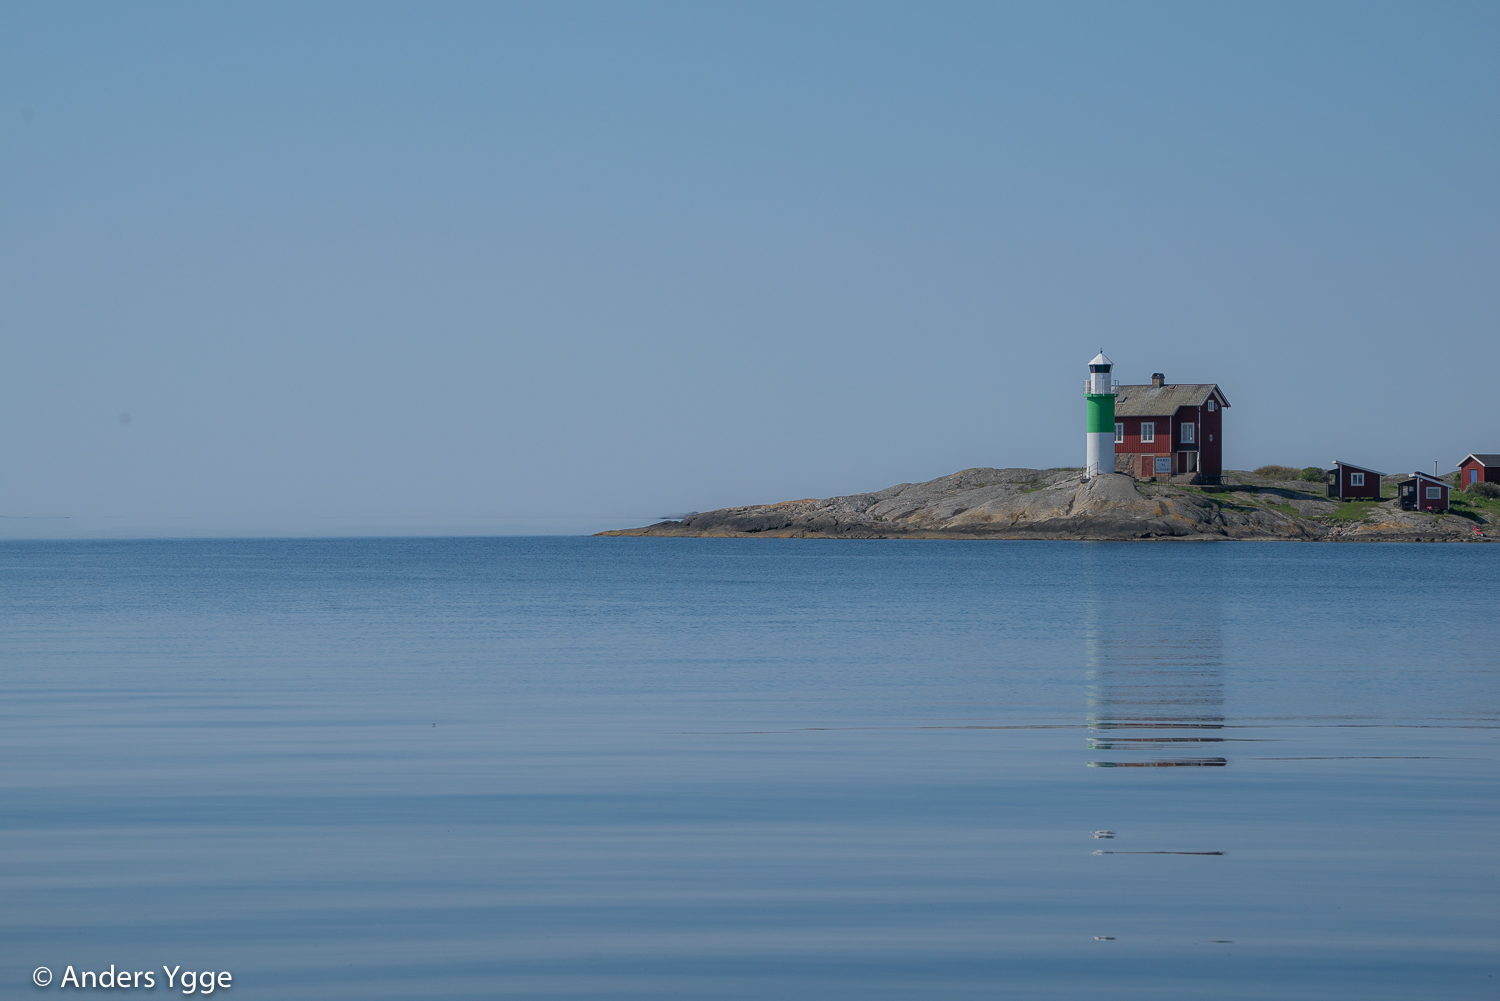 Valö lighthouse, south of Gbgs habor